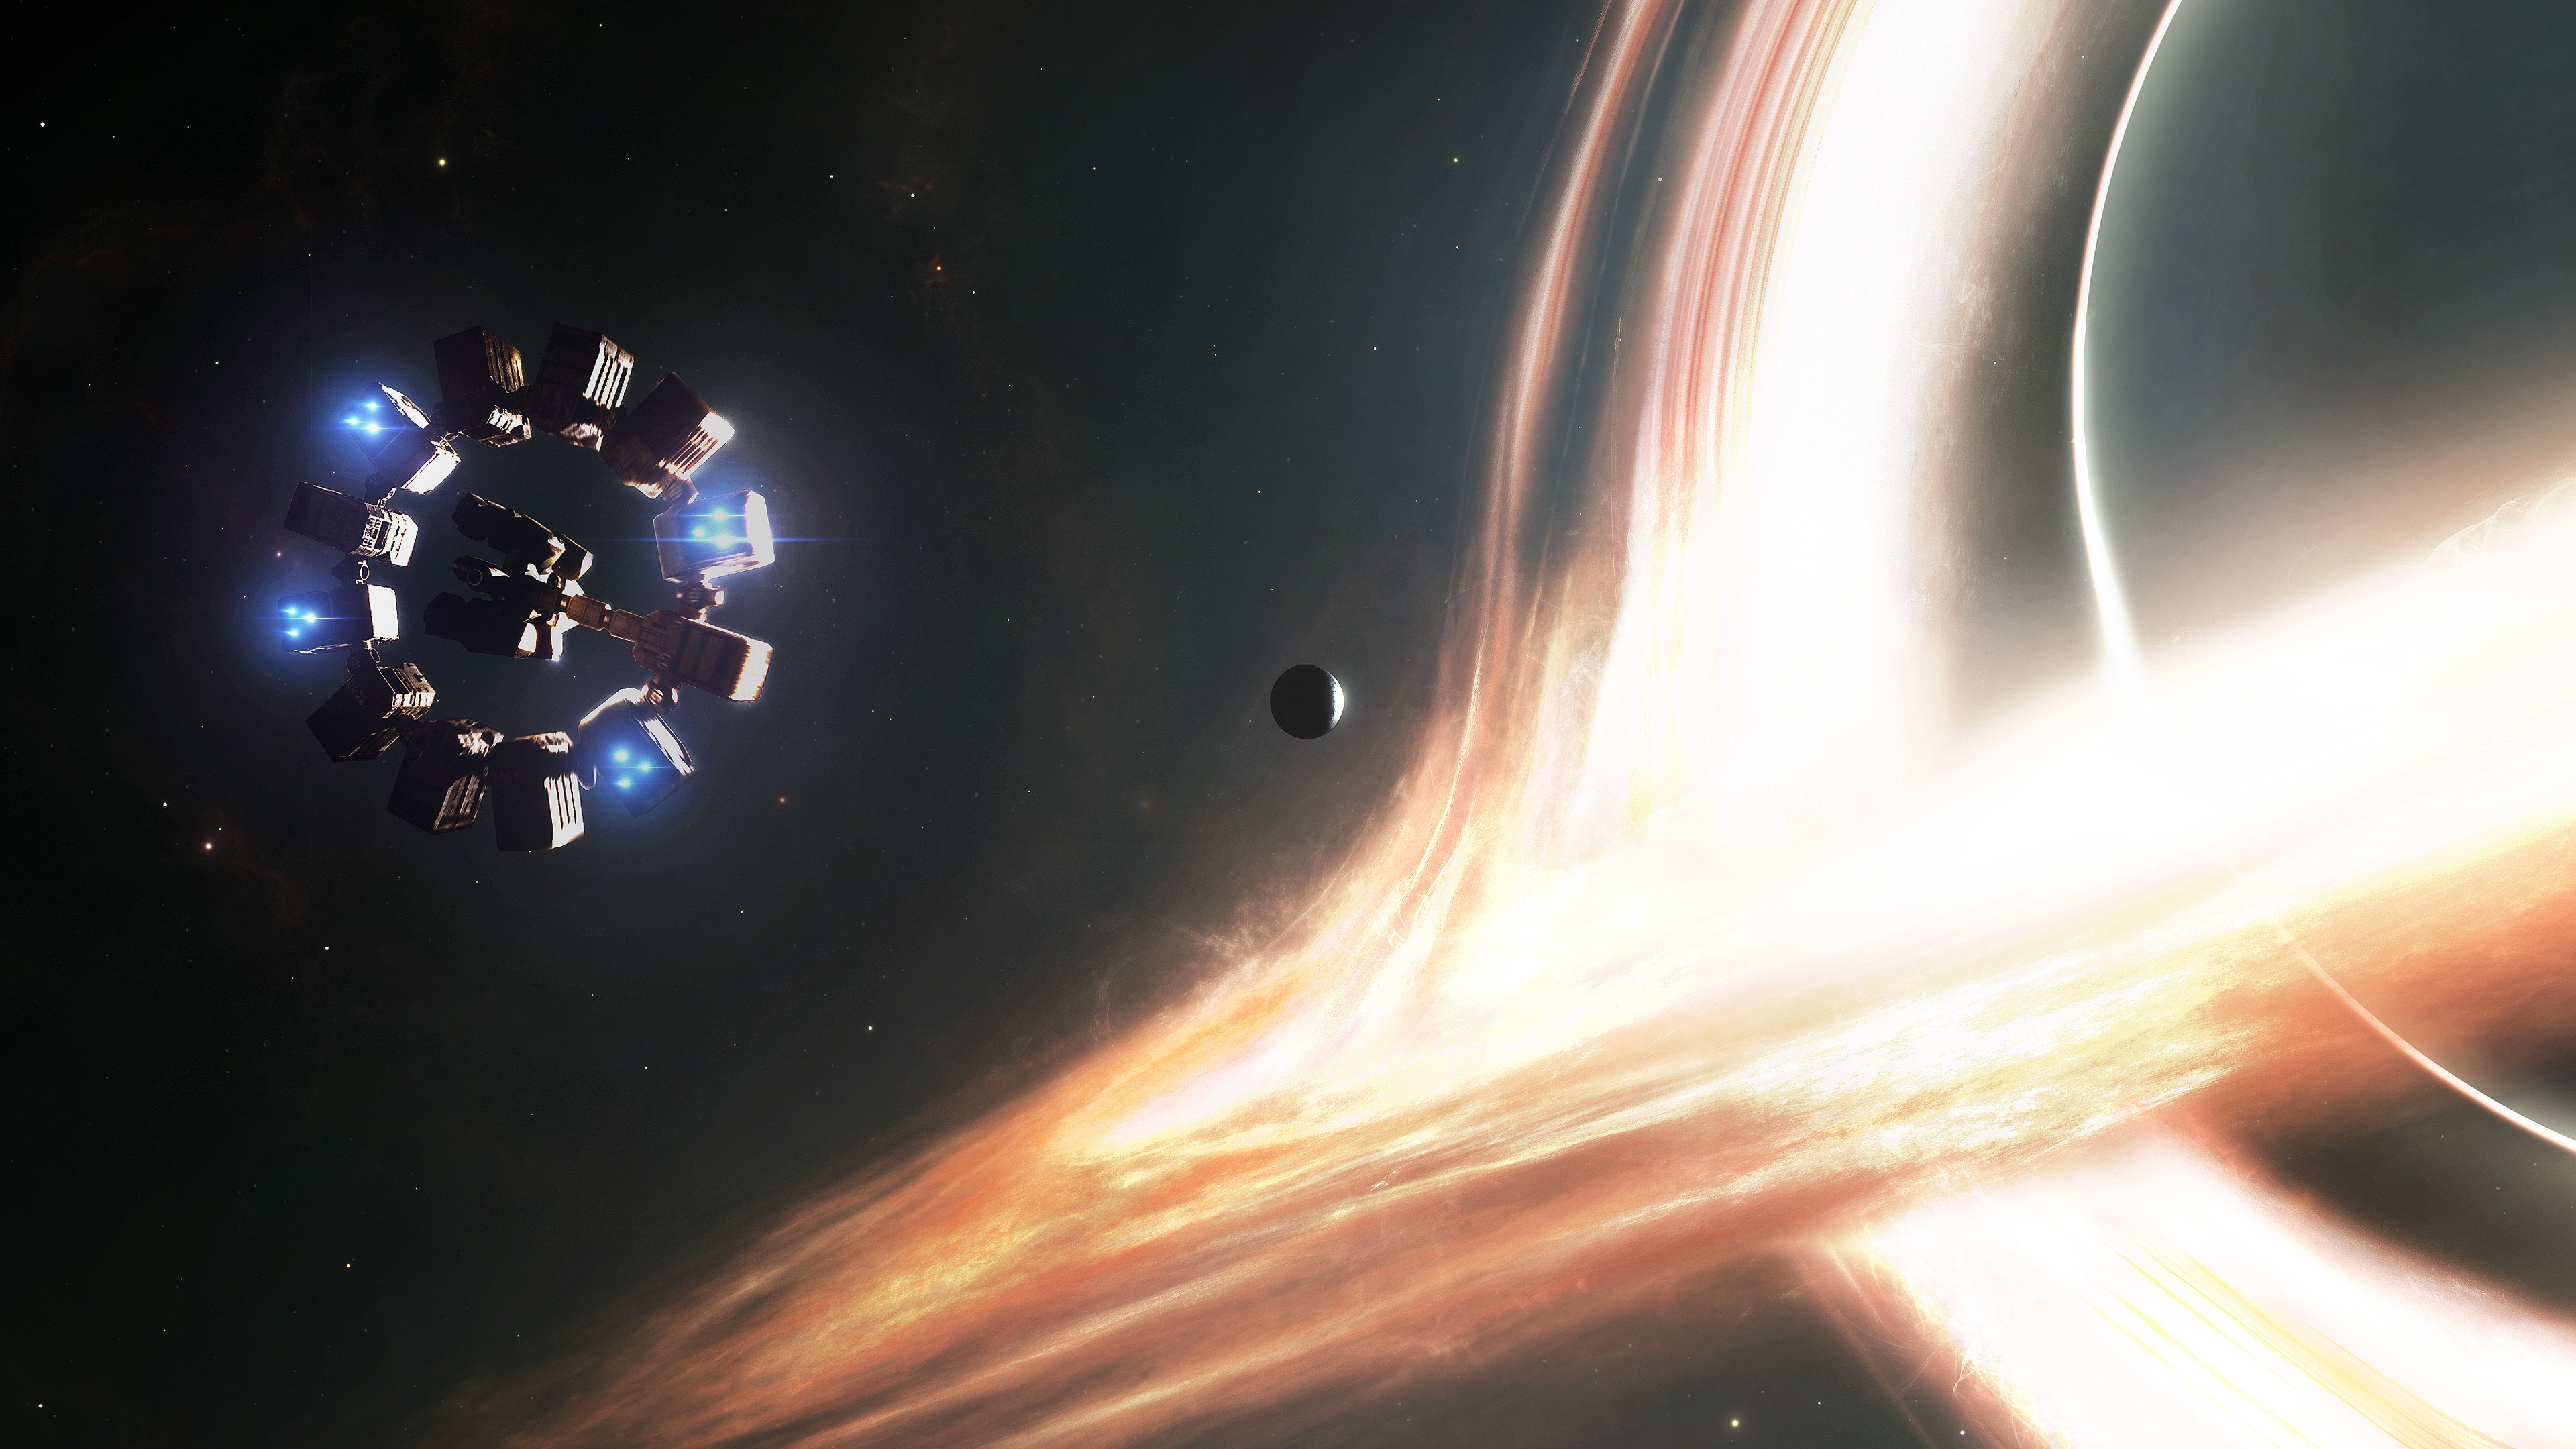 Interstellar y la relatividad: haters v fanboys